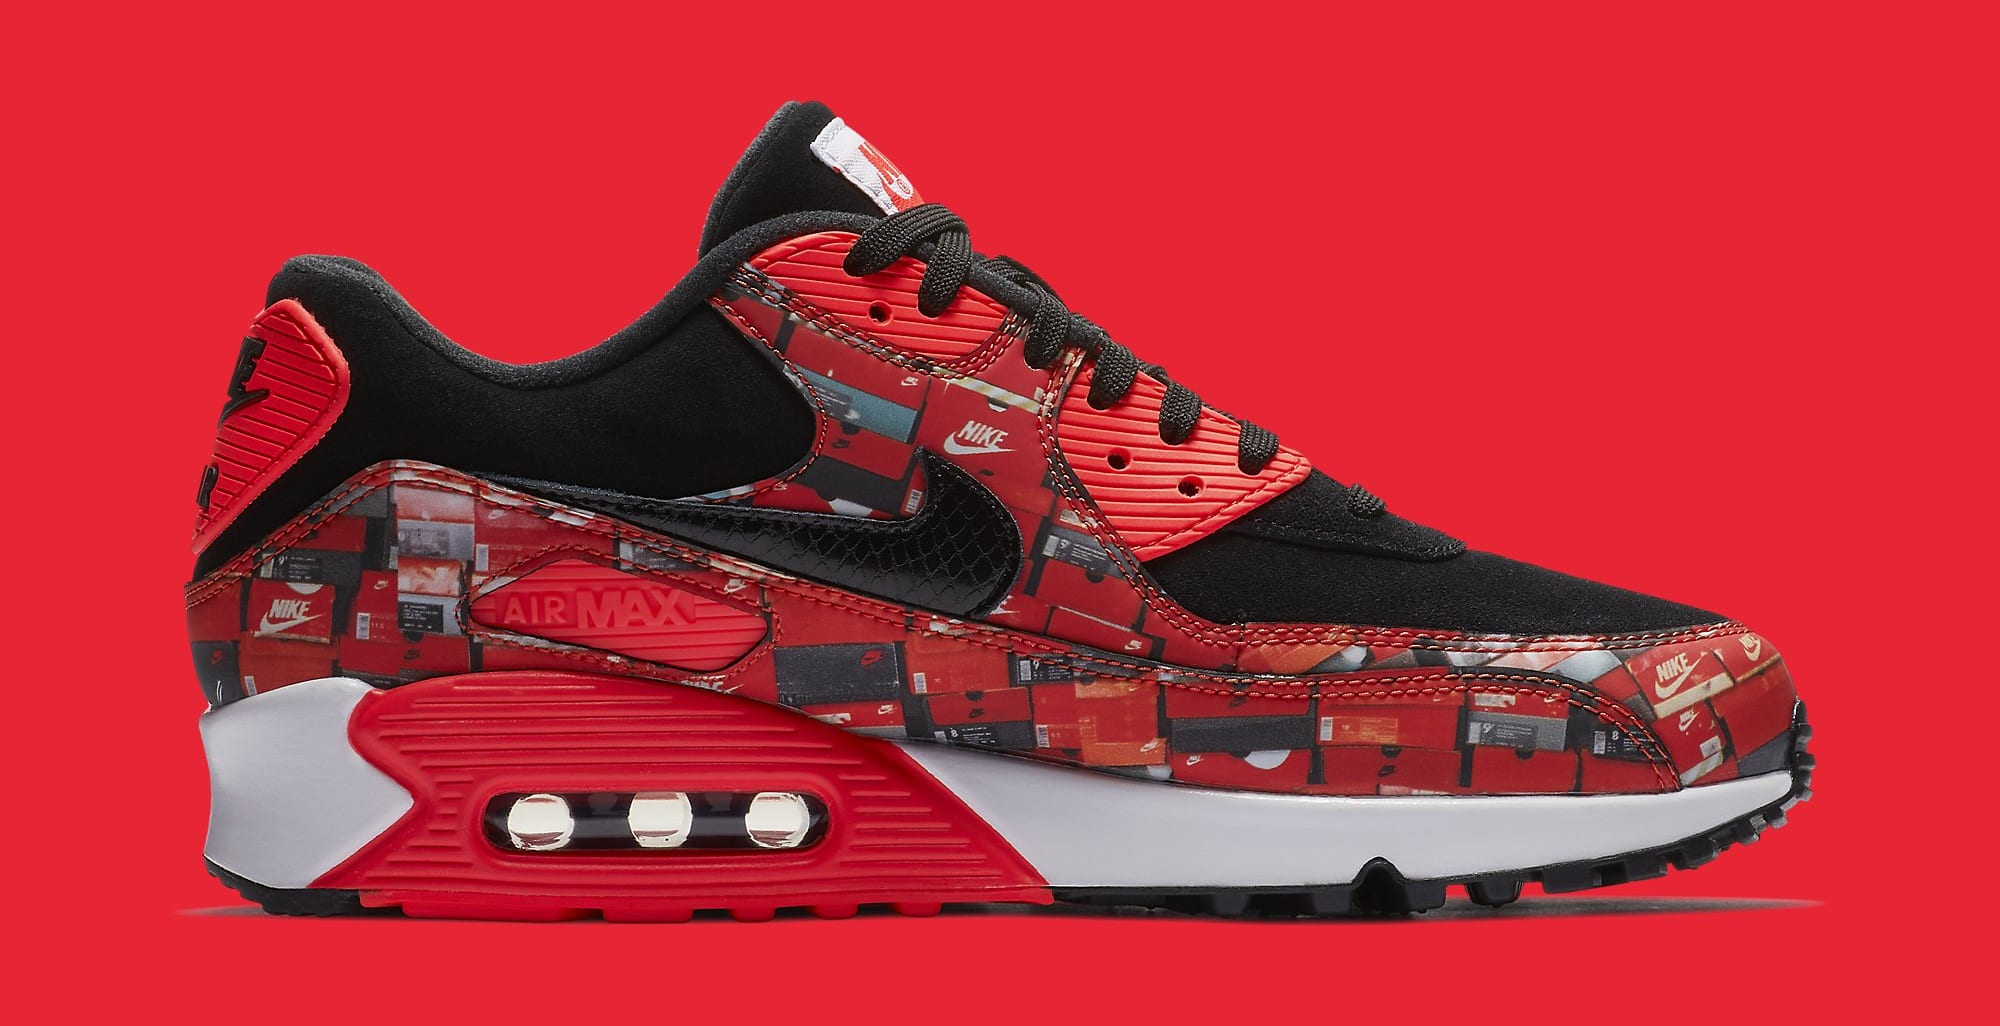 Atmos Air Max 90 Custom Restorations with Vick